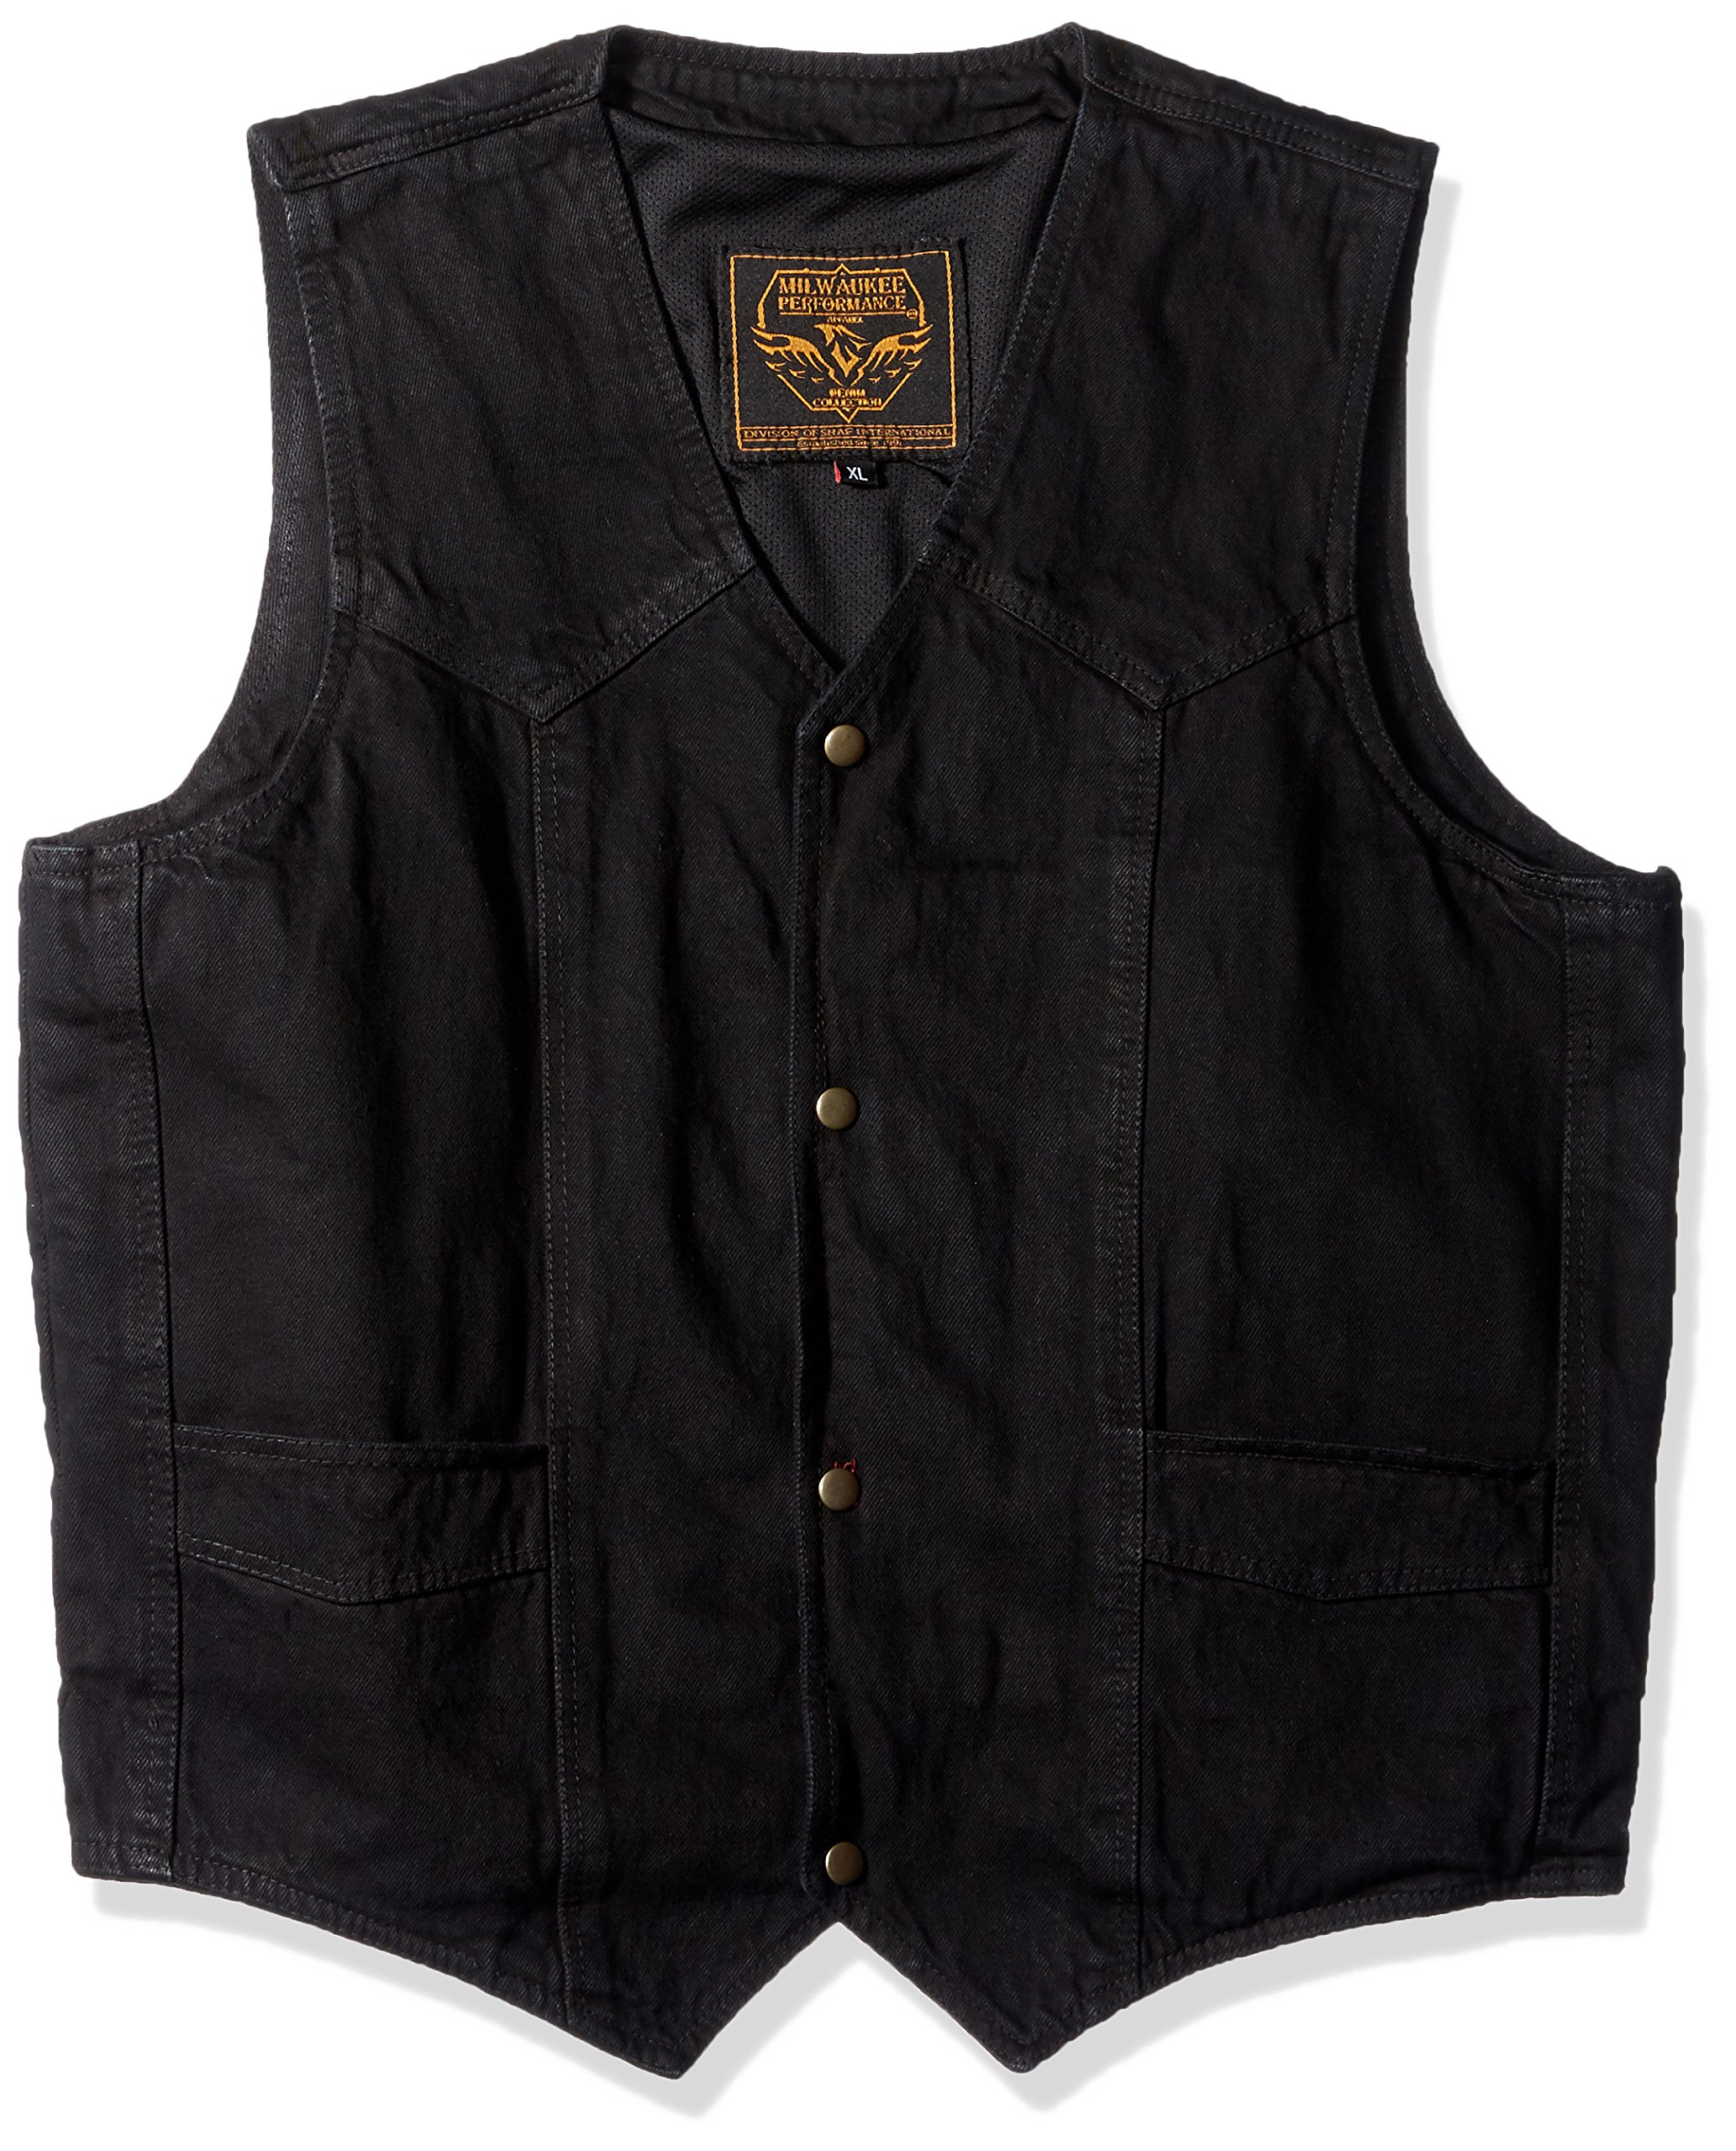 Milwaukee Performance Men's Plain Side Basic Denim Vest (Black, X-Large)